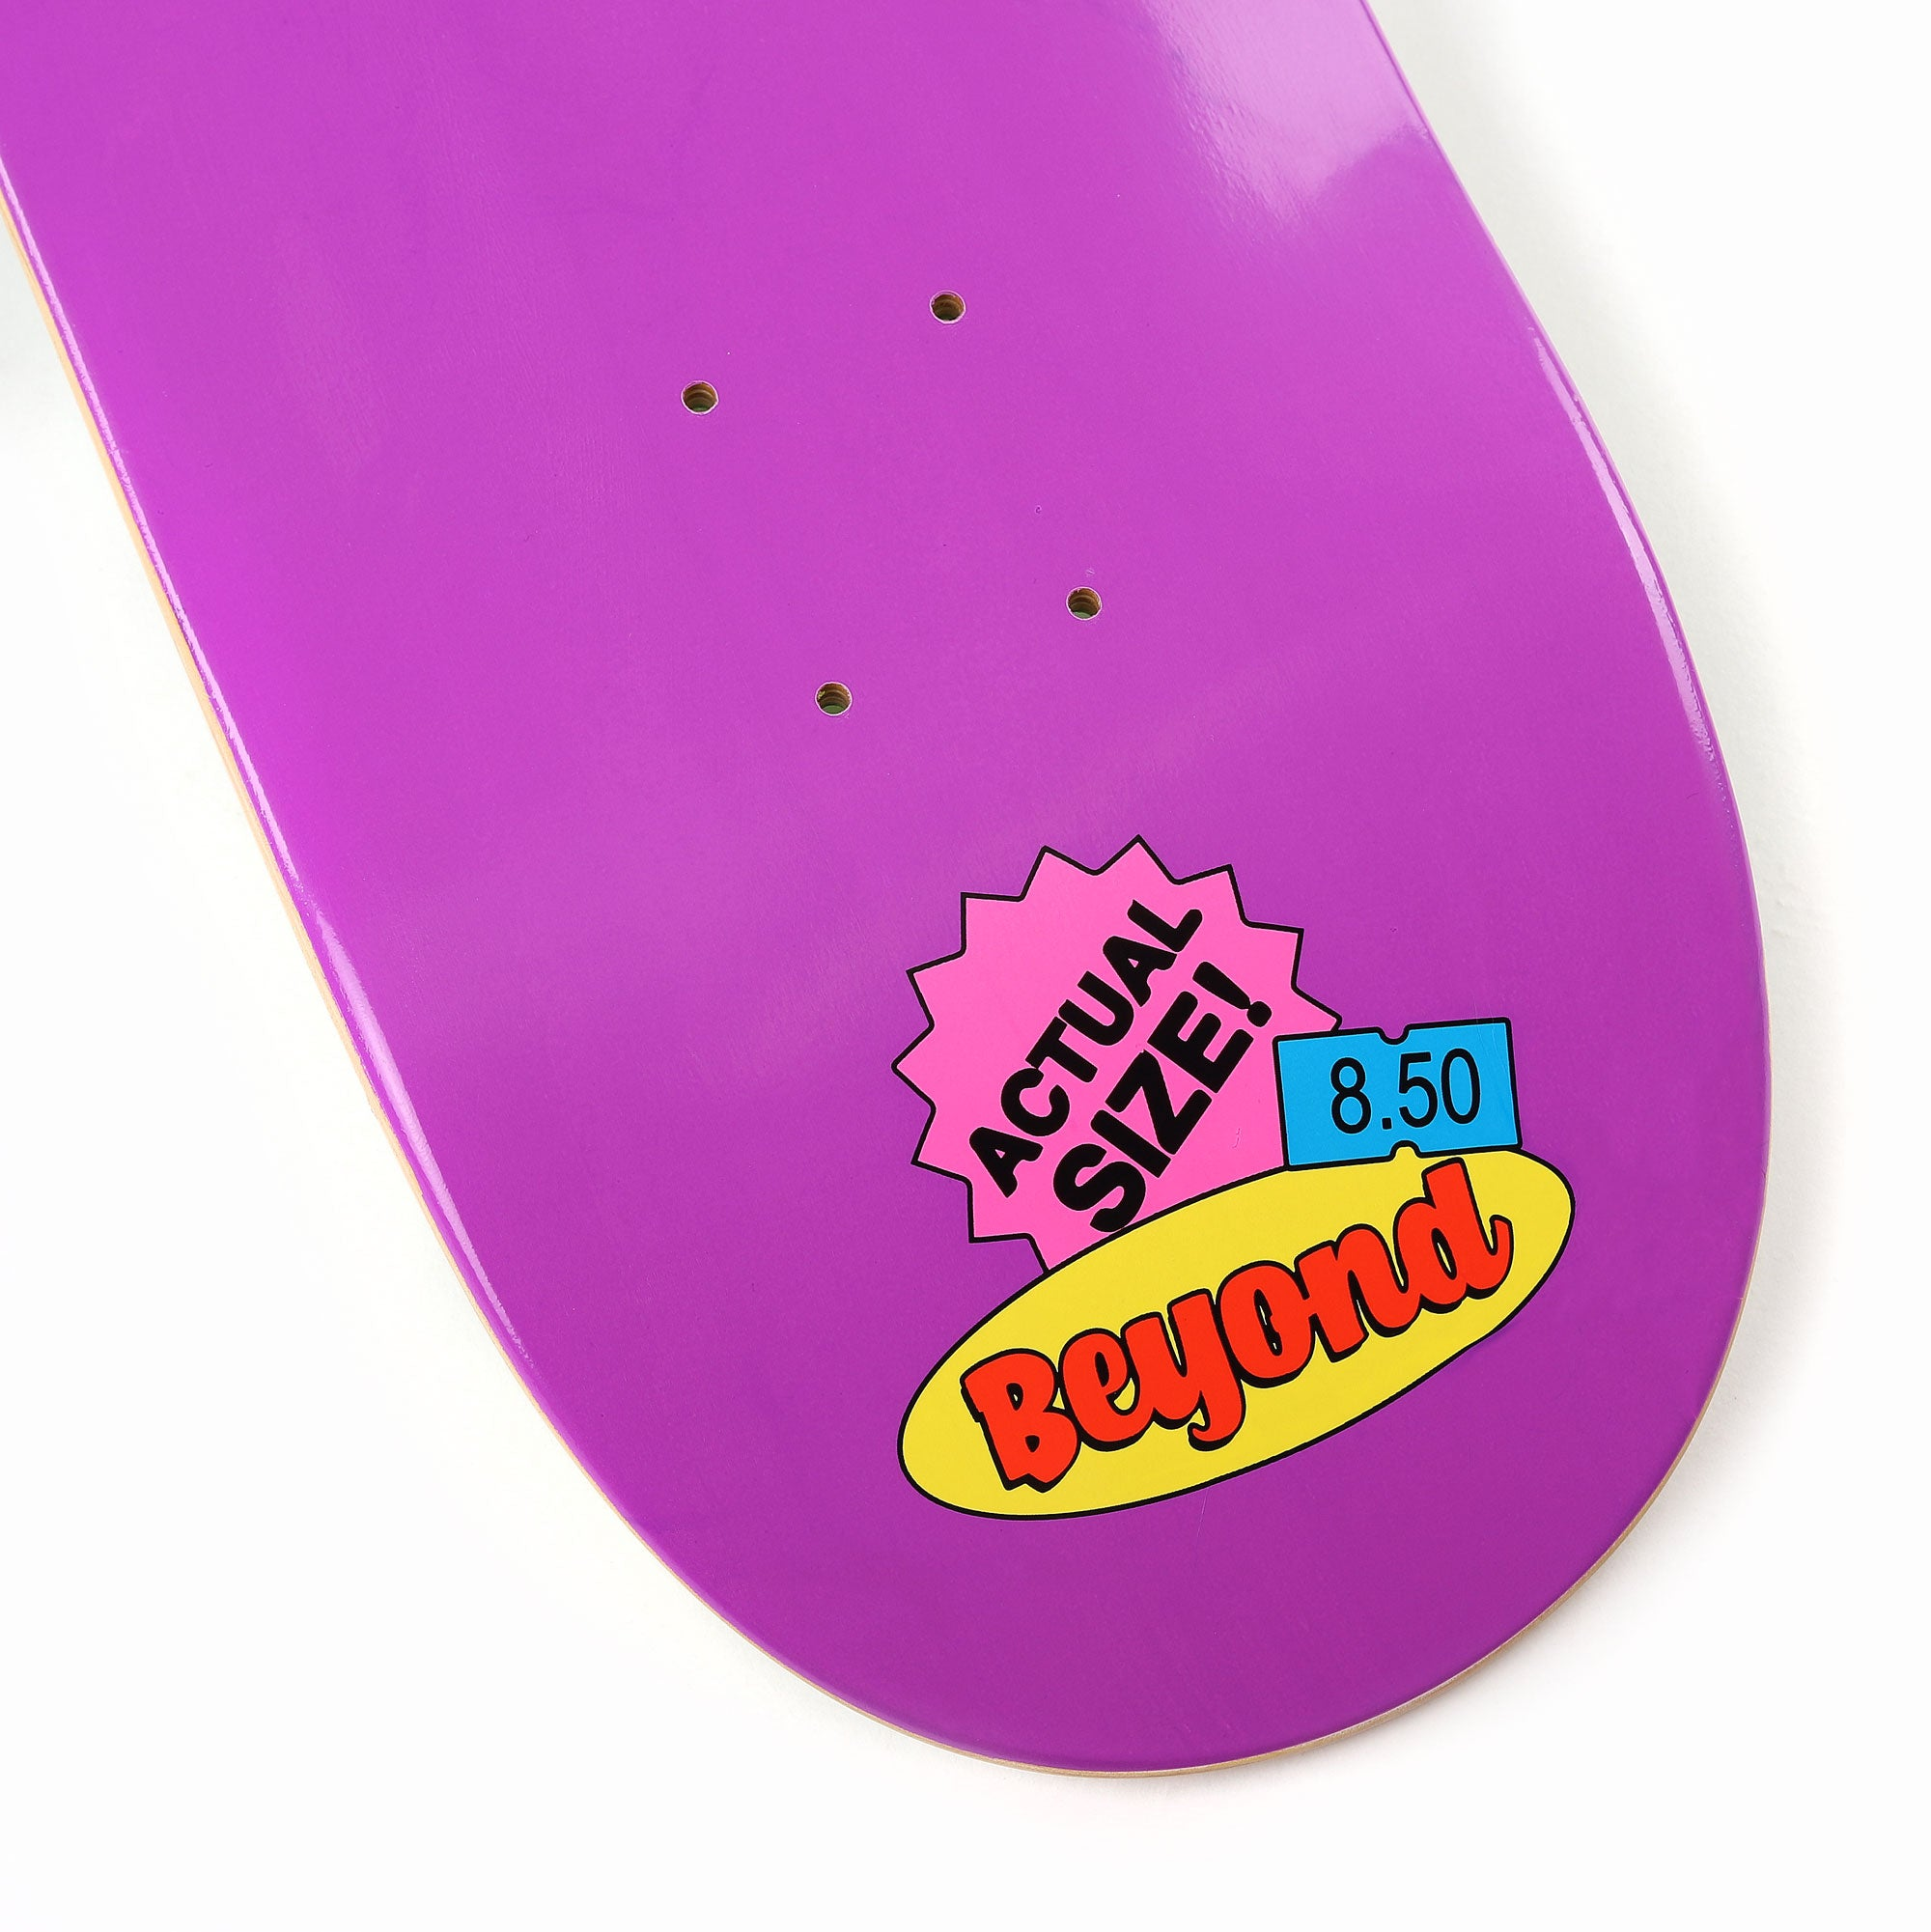 Beyond Actual Deck Product Photo #2